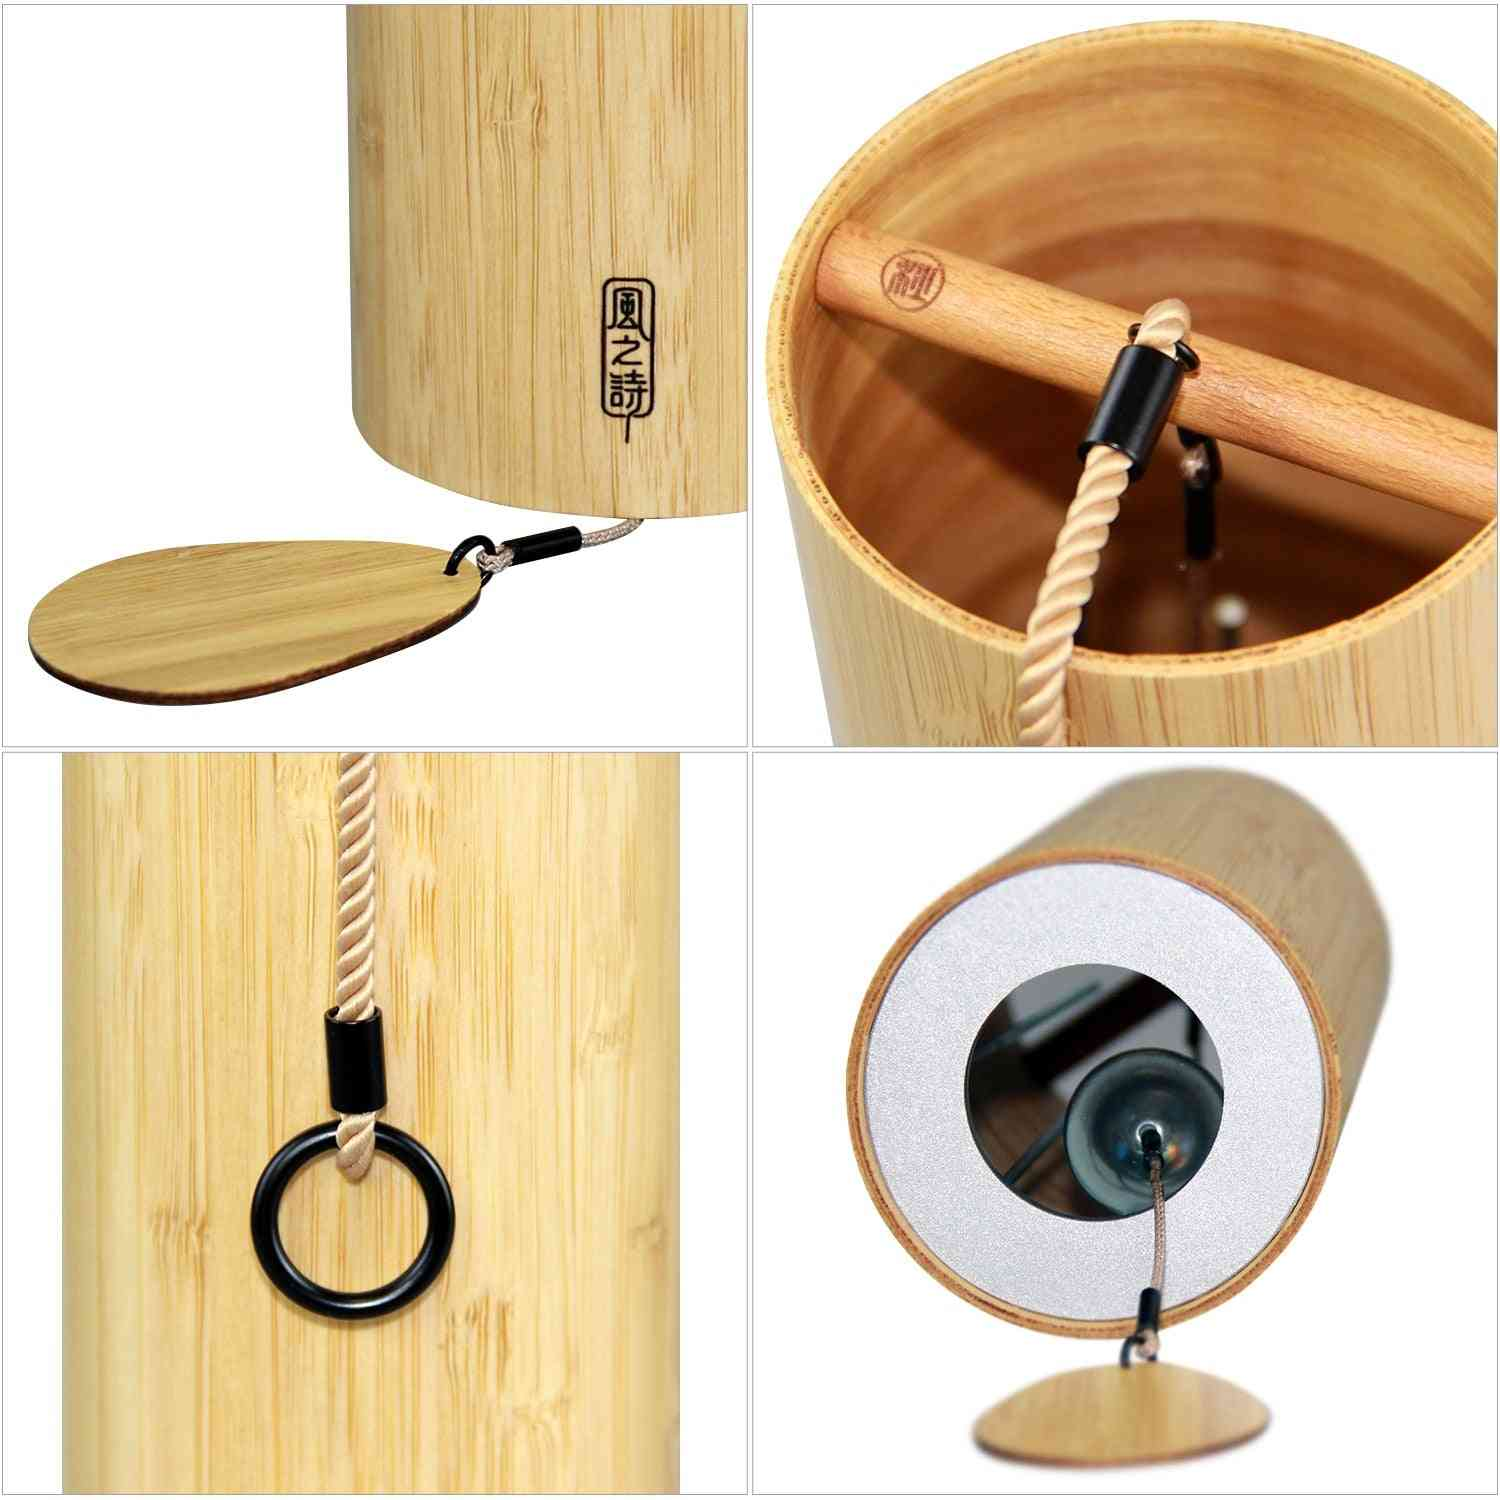 Bamboo Wind Chimes, Wind Bell For Outdoor Garden, Patio Home Decoration, Zen Meditation, Relaxation, Chord